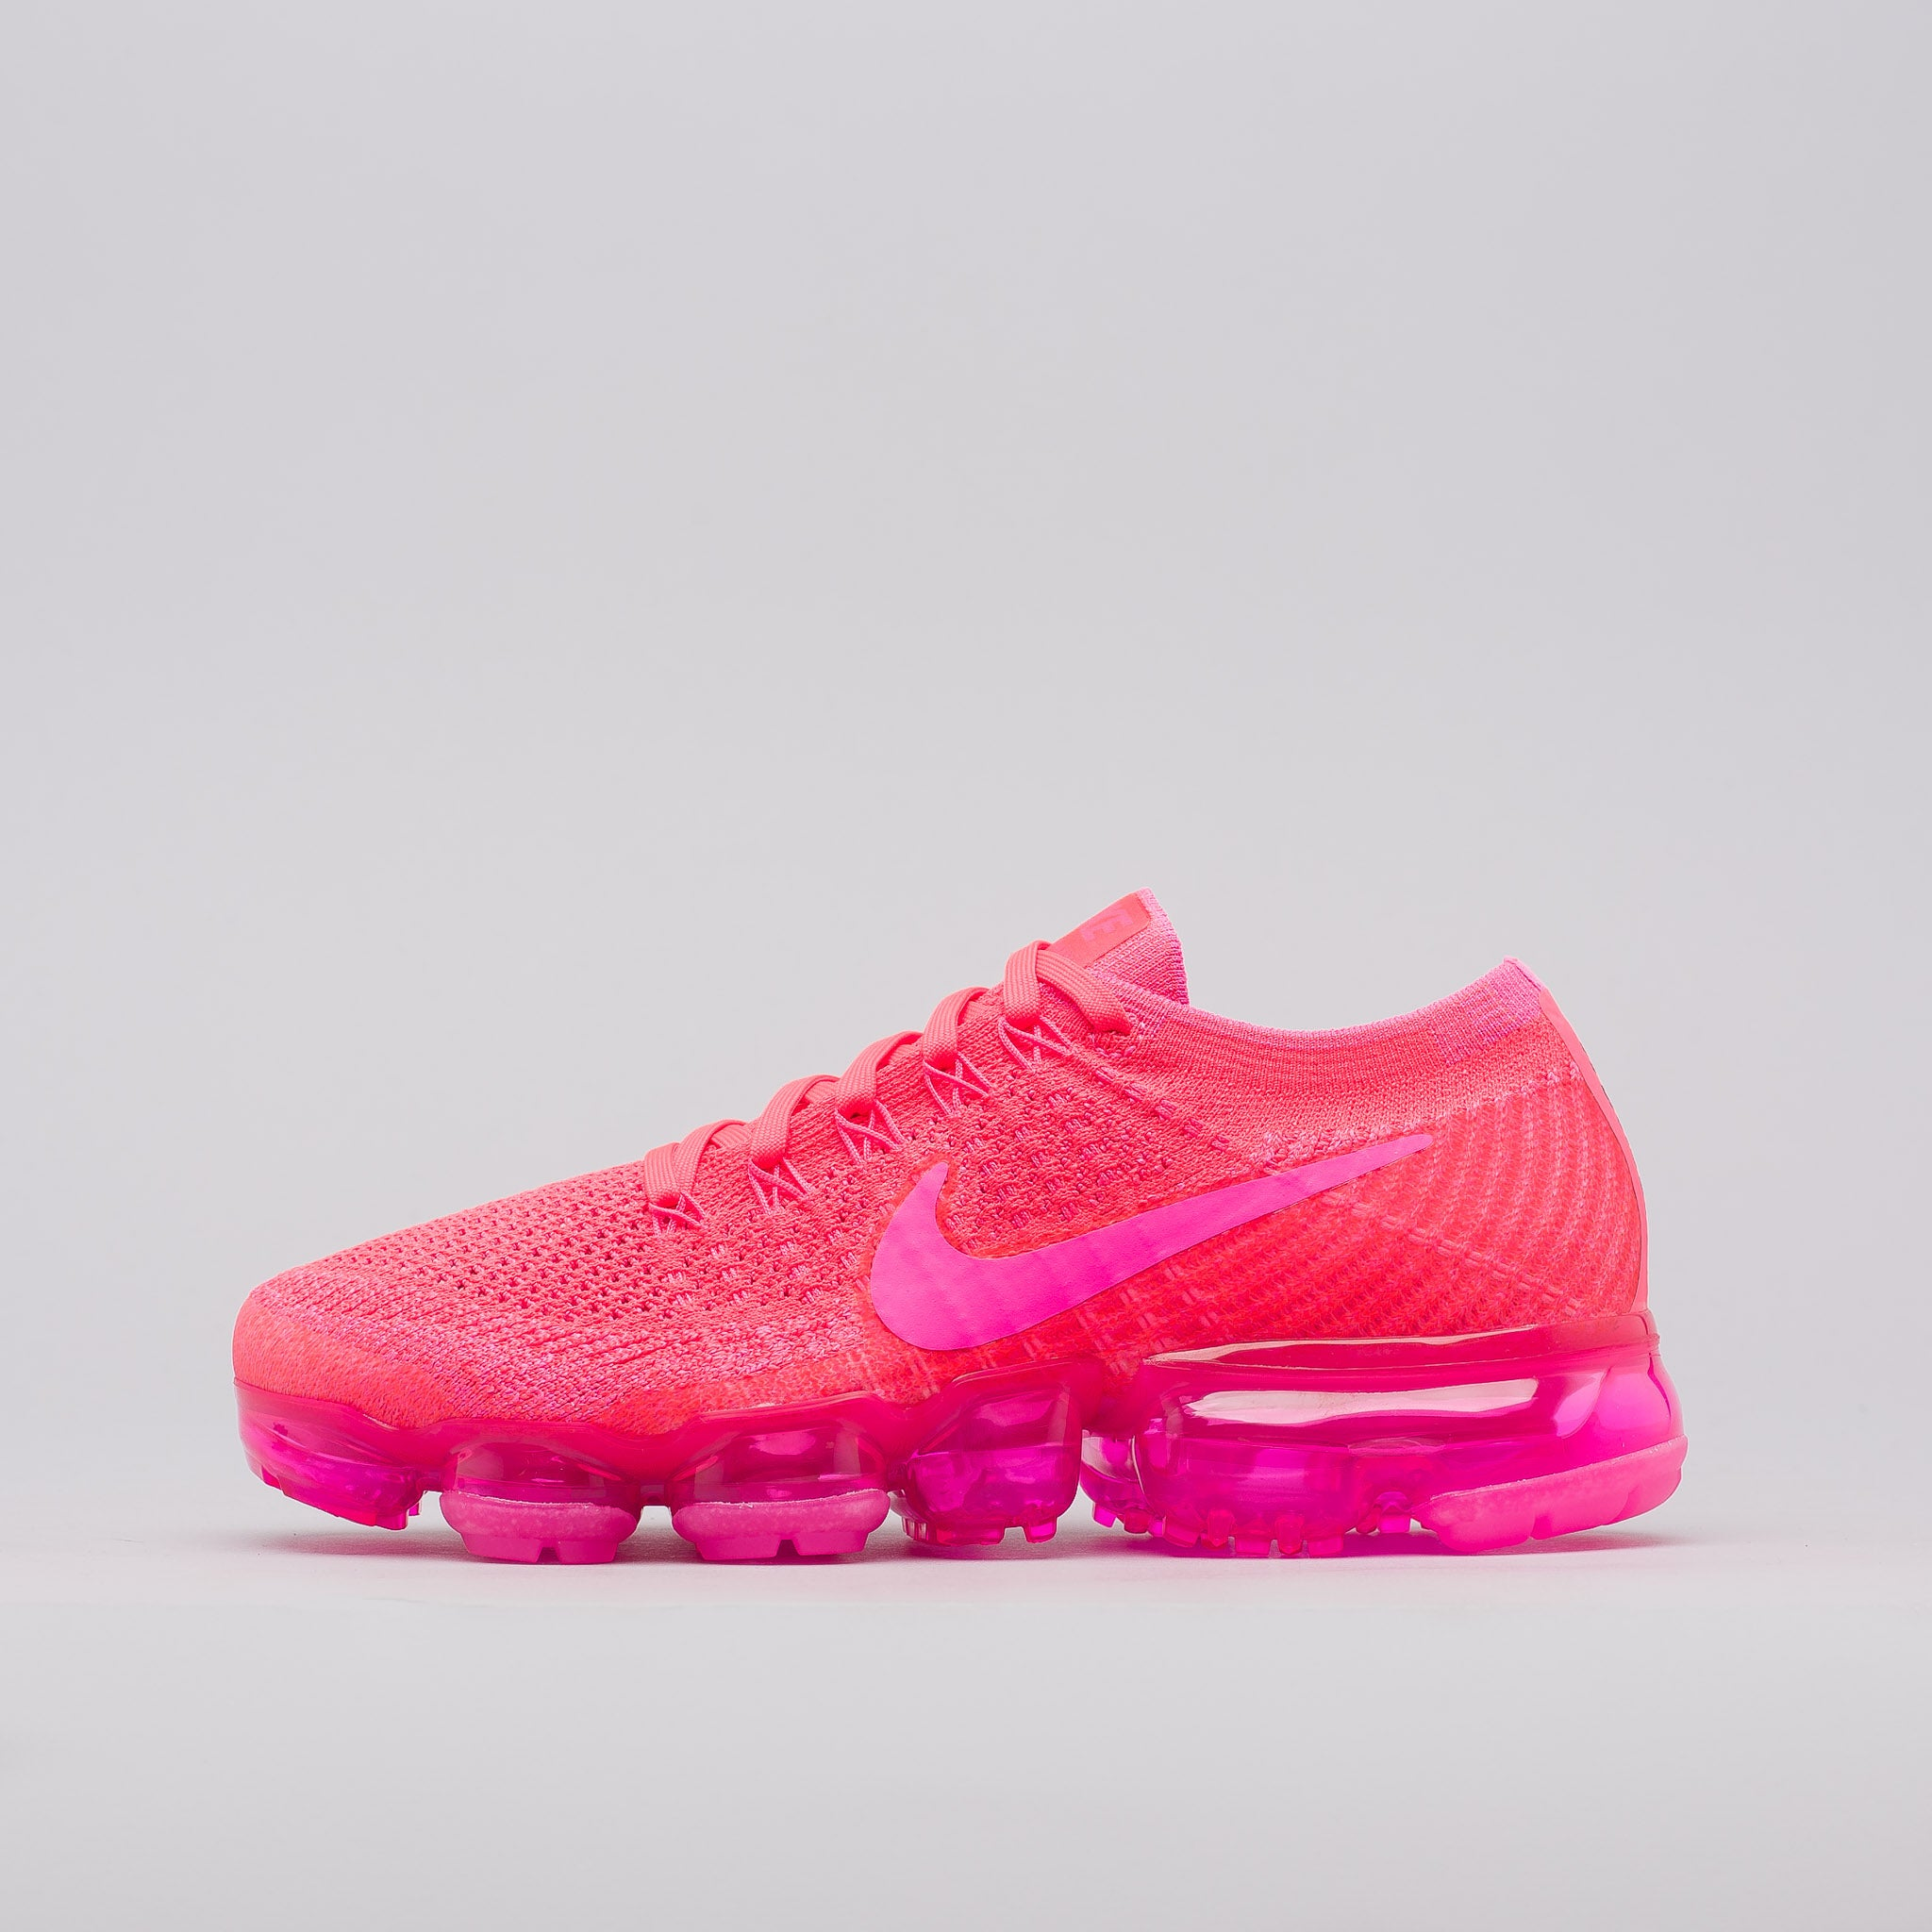 cfe8be0115 Nike Vapormax Hyper Punch diversys.co.uk